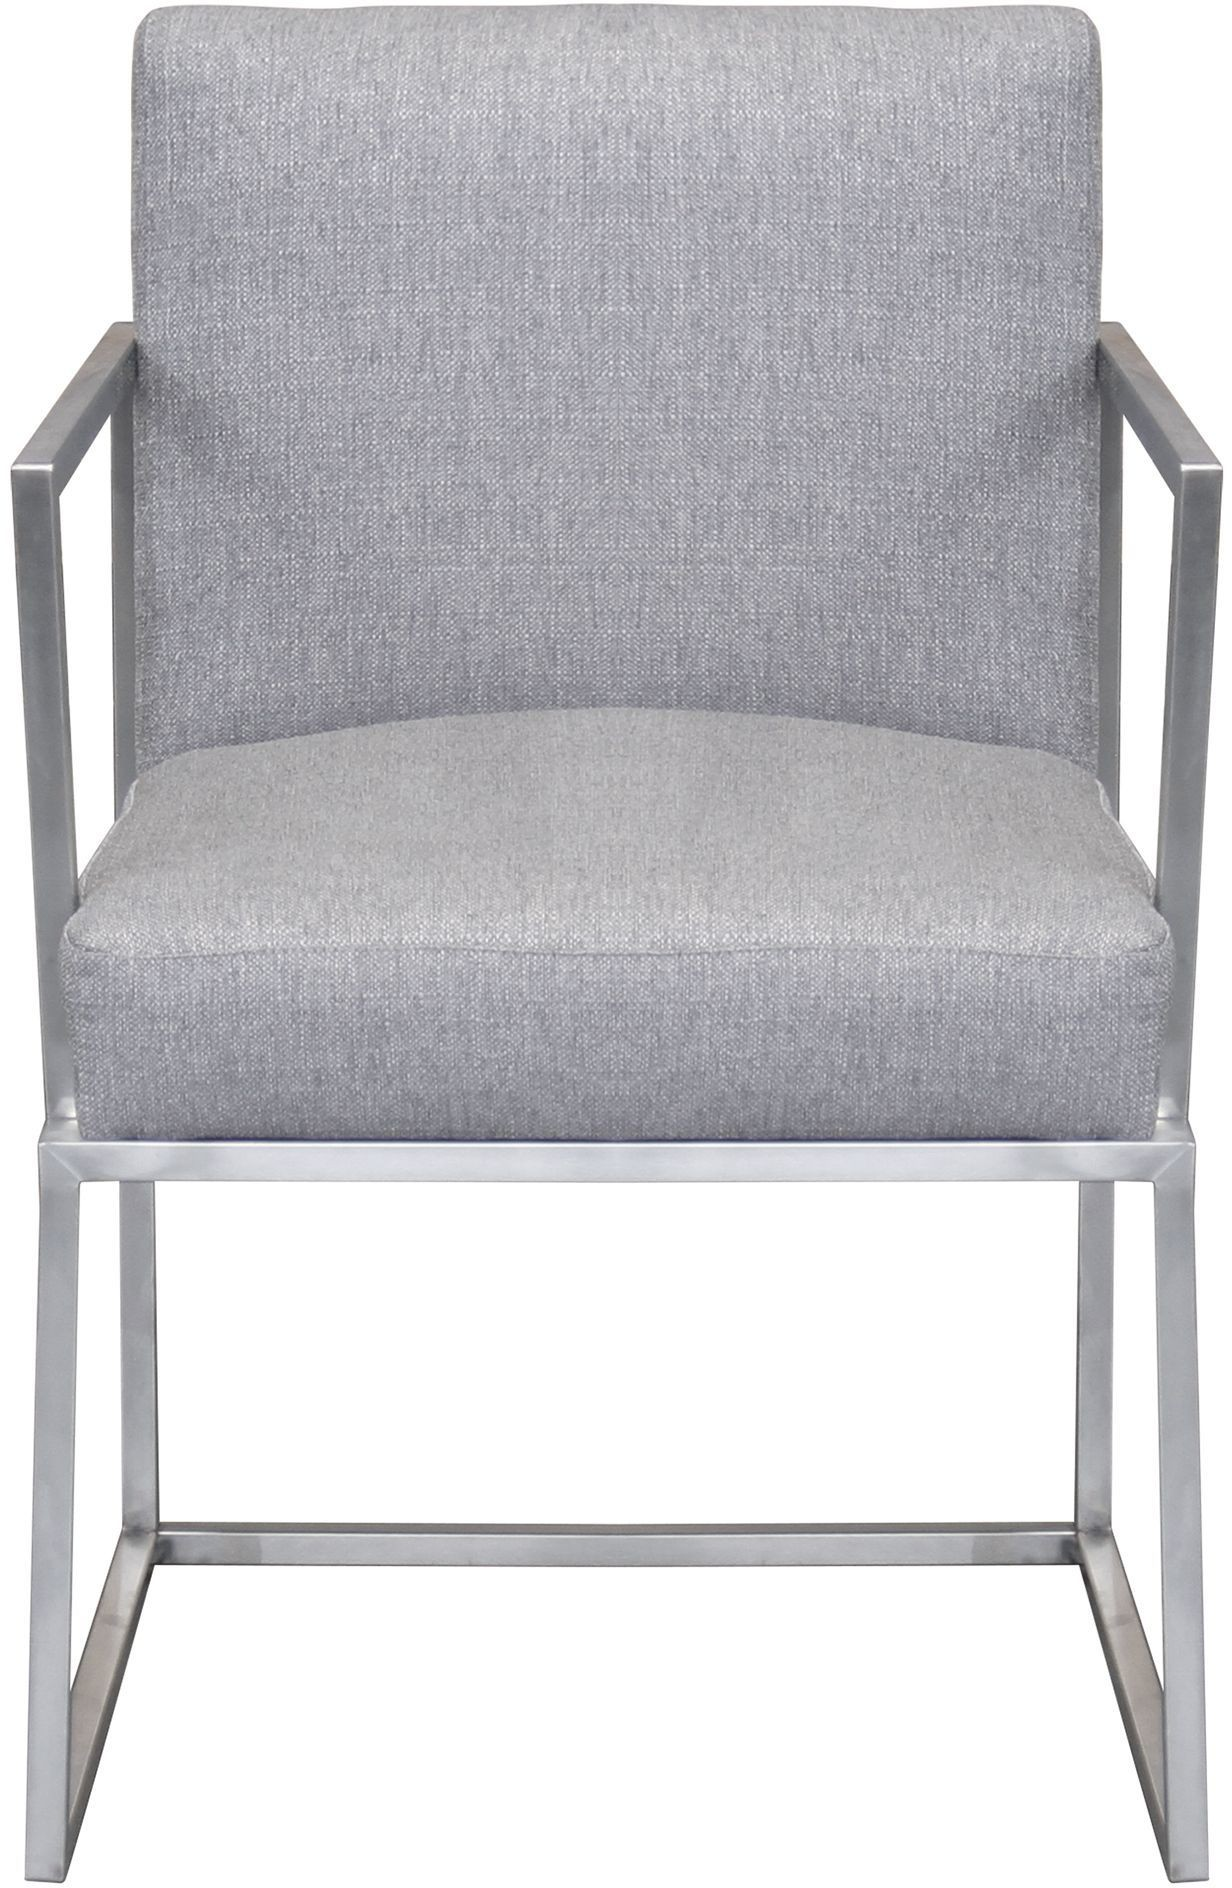 Grey Upholstered Chair Warwick Grey Upholstered Arm Chair From Armen Living